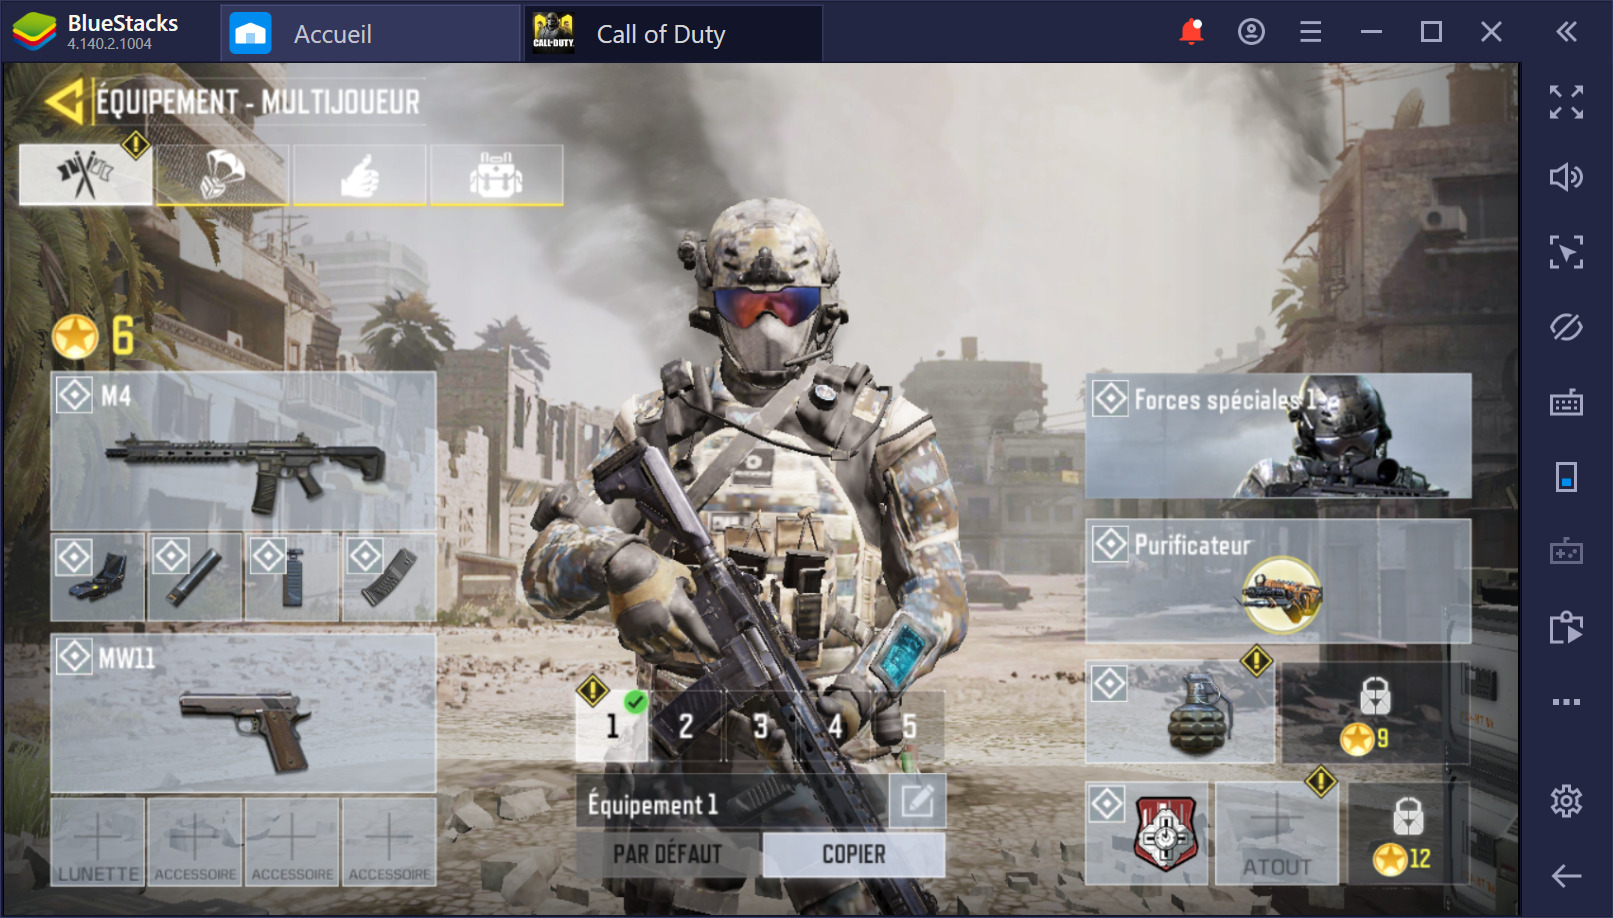 Call of Duty (CoD) Mobile sur PC débarque sur BlueStacks